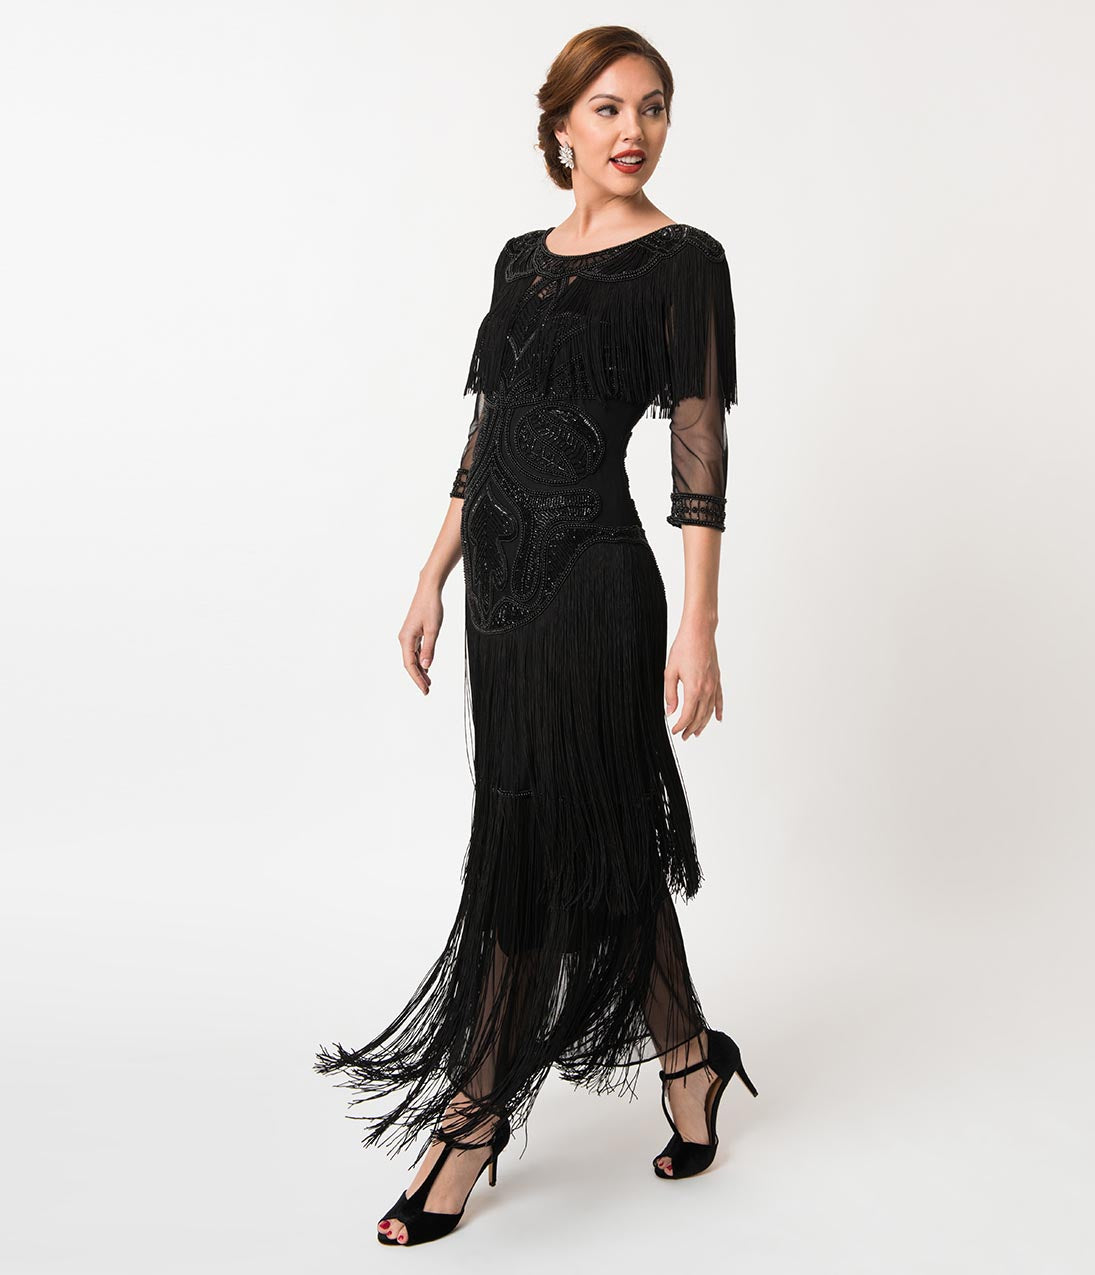 1920s Evening Gowns by Year 1920S Style Black Beaded Mesh Glam Fringe Flapper Maxi Gown $248.00 AT vintagedancer.com